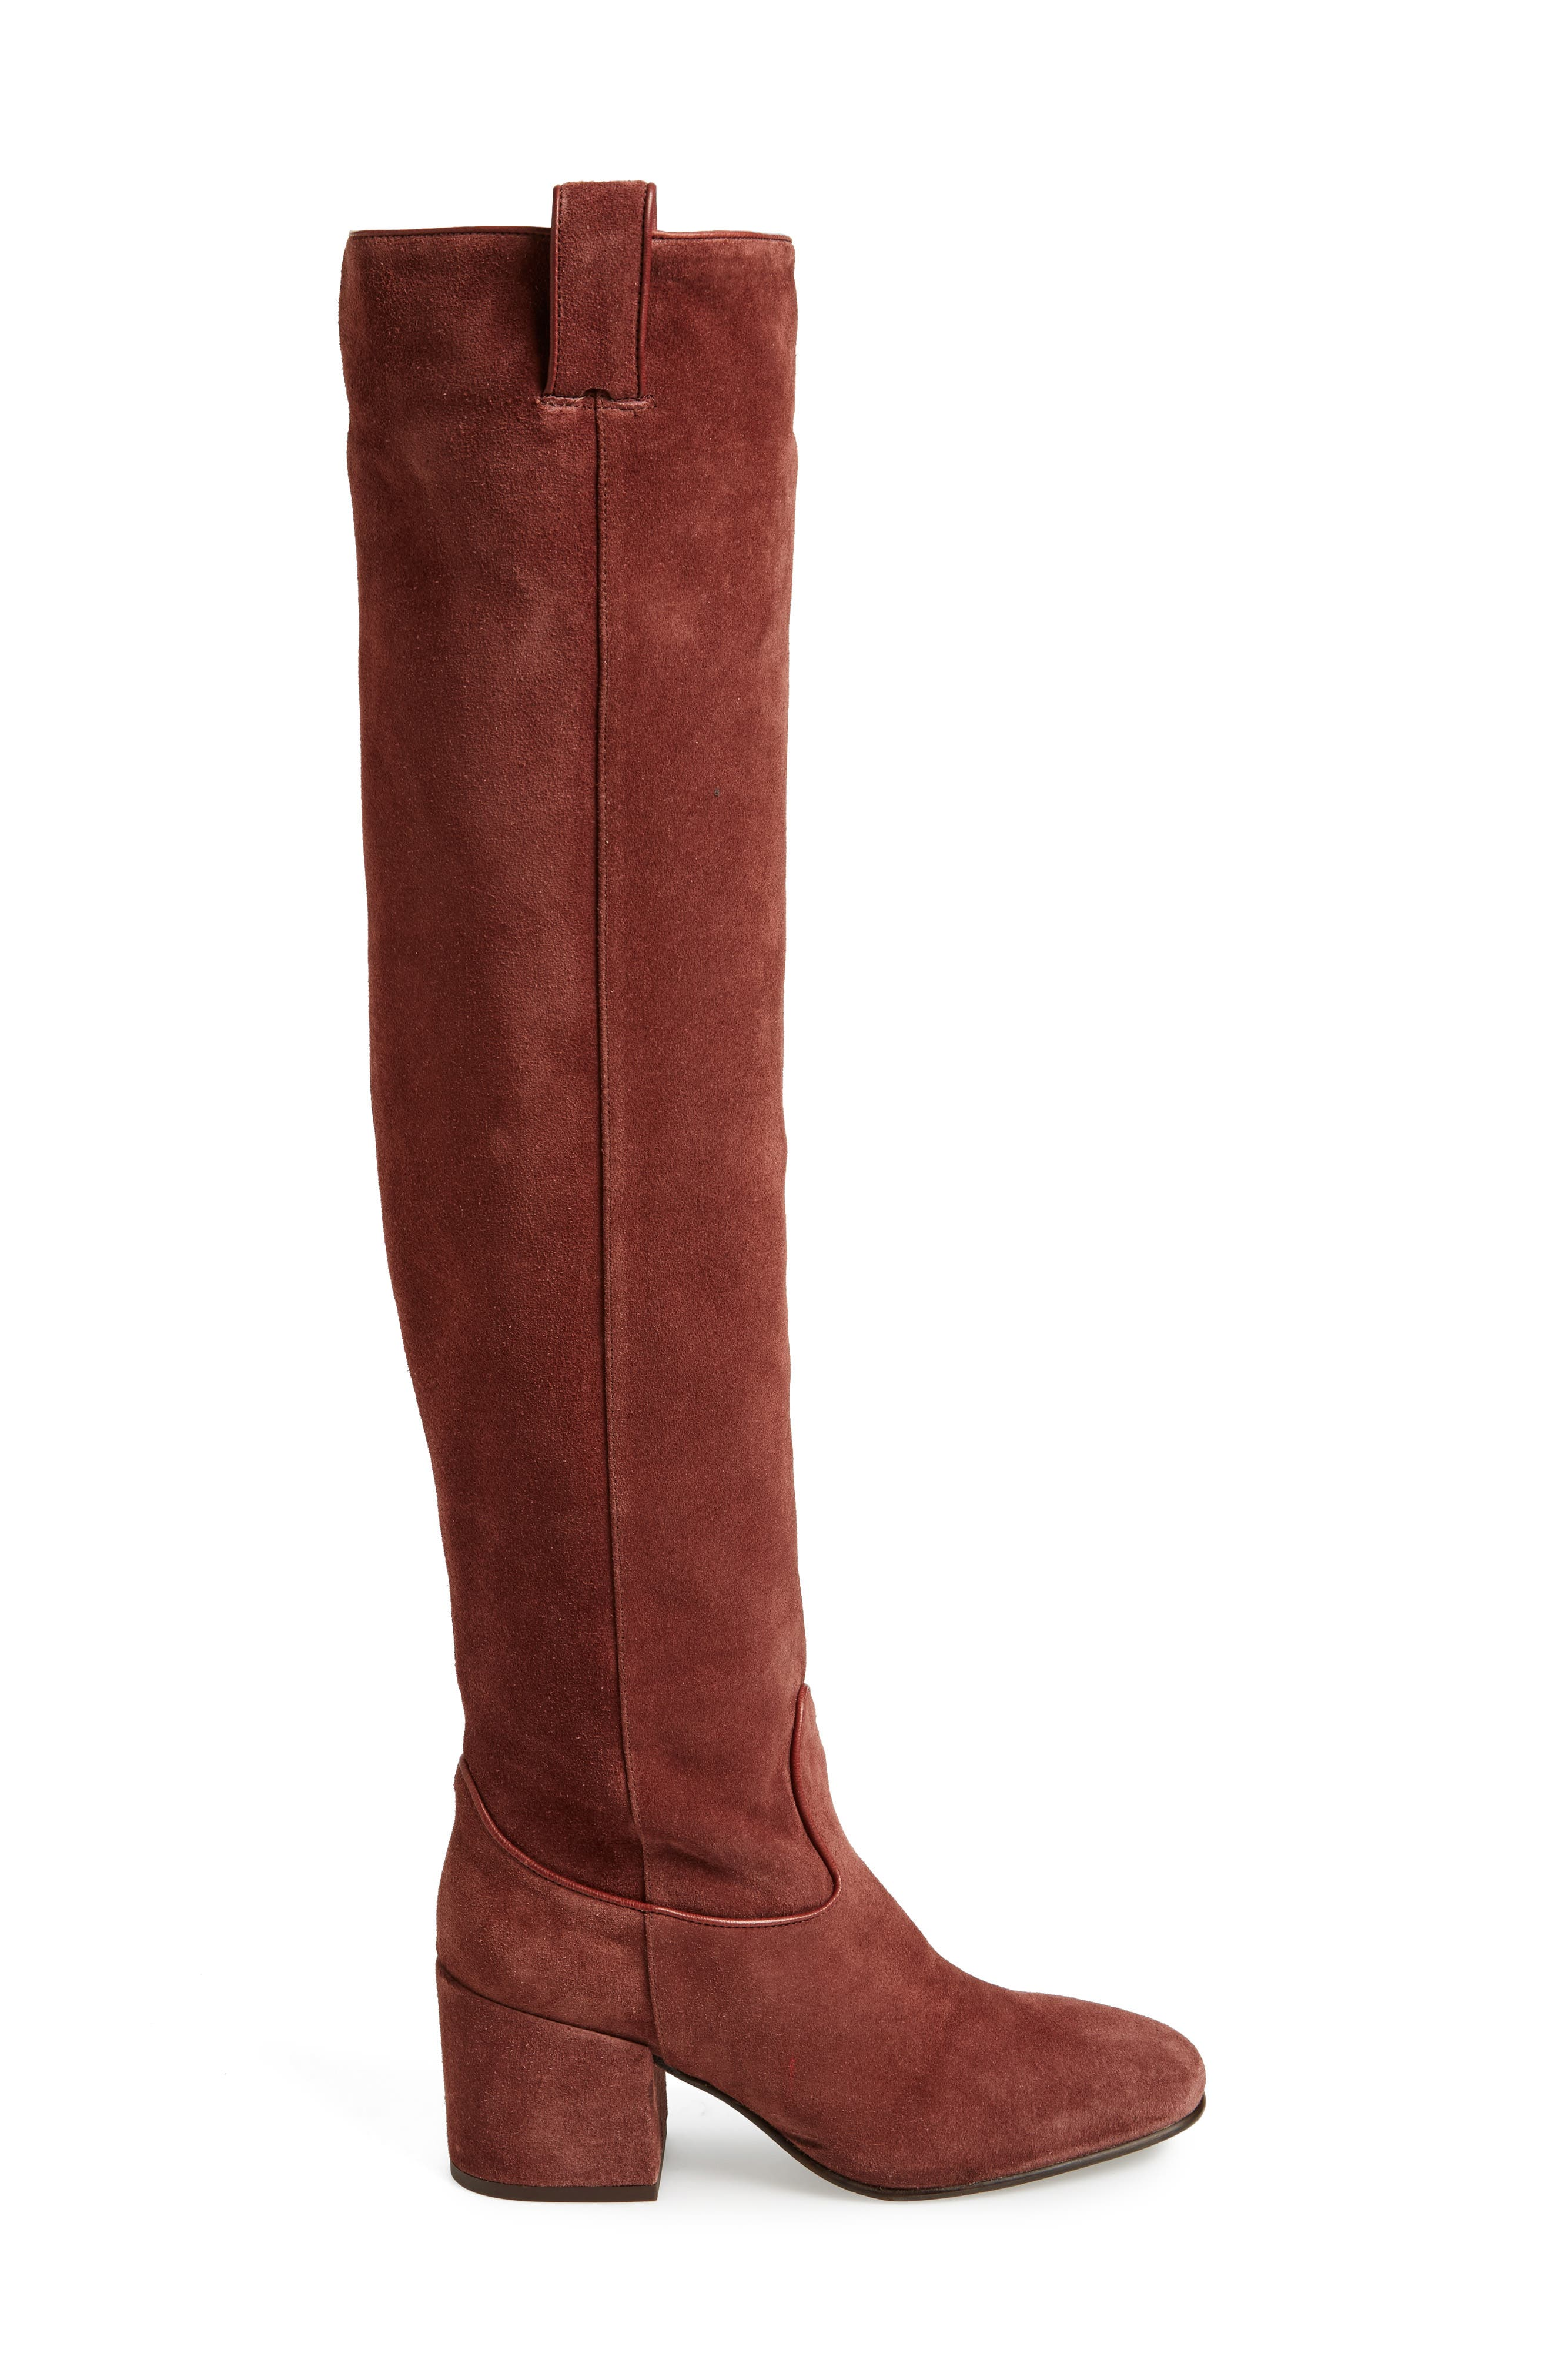 Delia Over the Knee Boot,                             Alternate thumbnail 3, color,                             Mogano